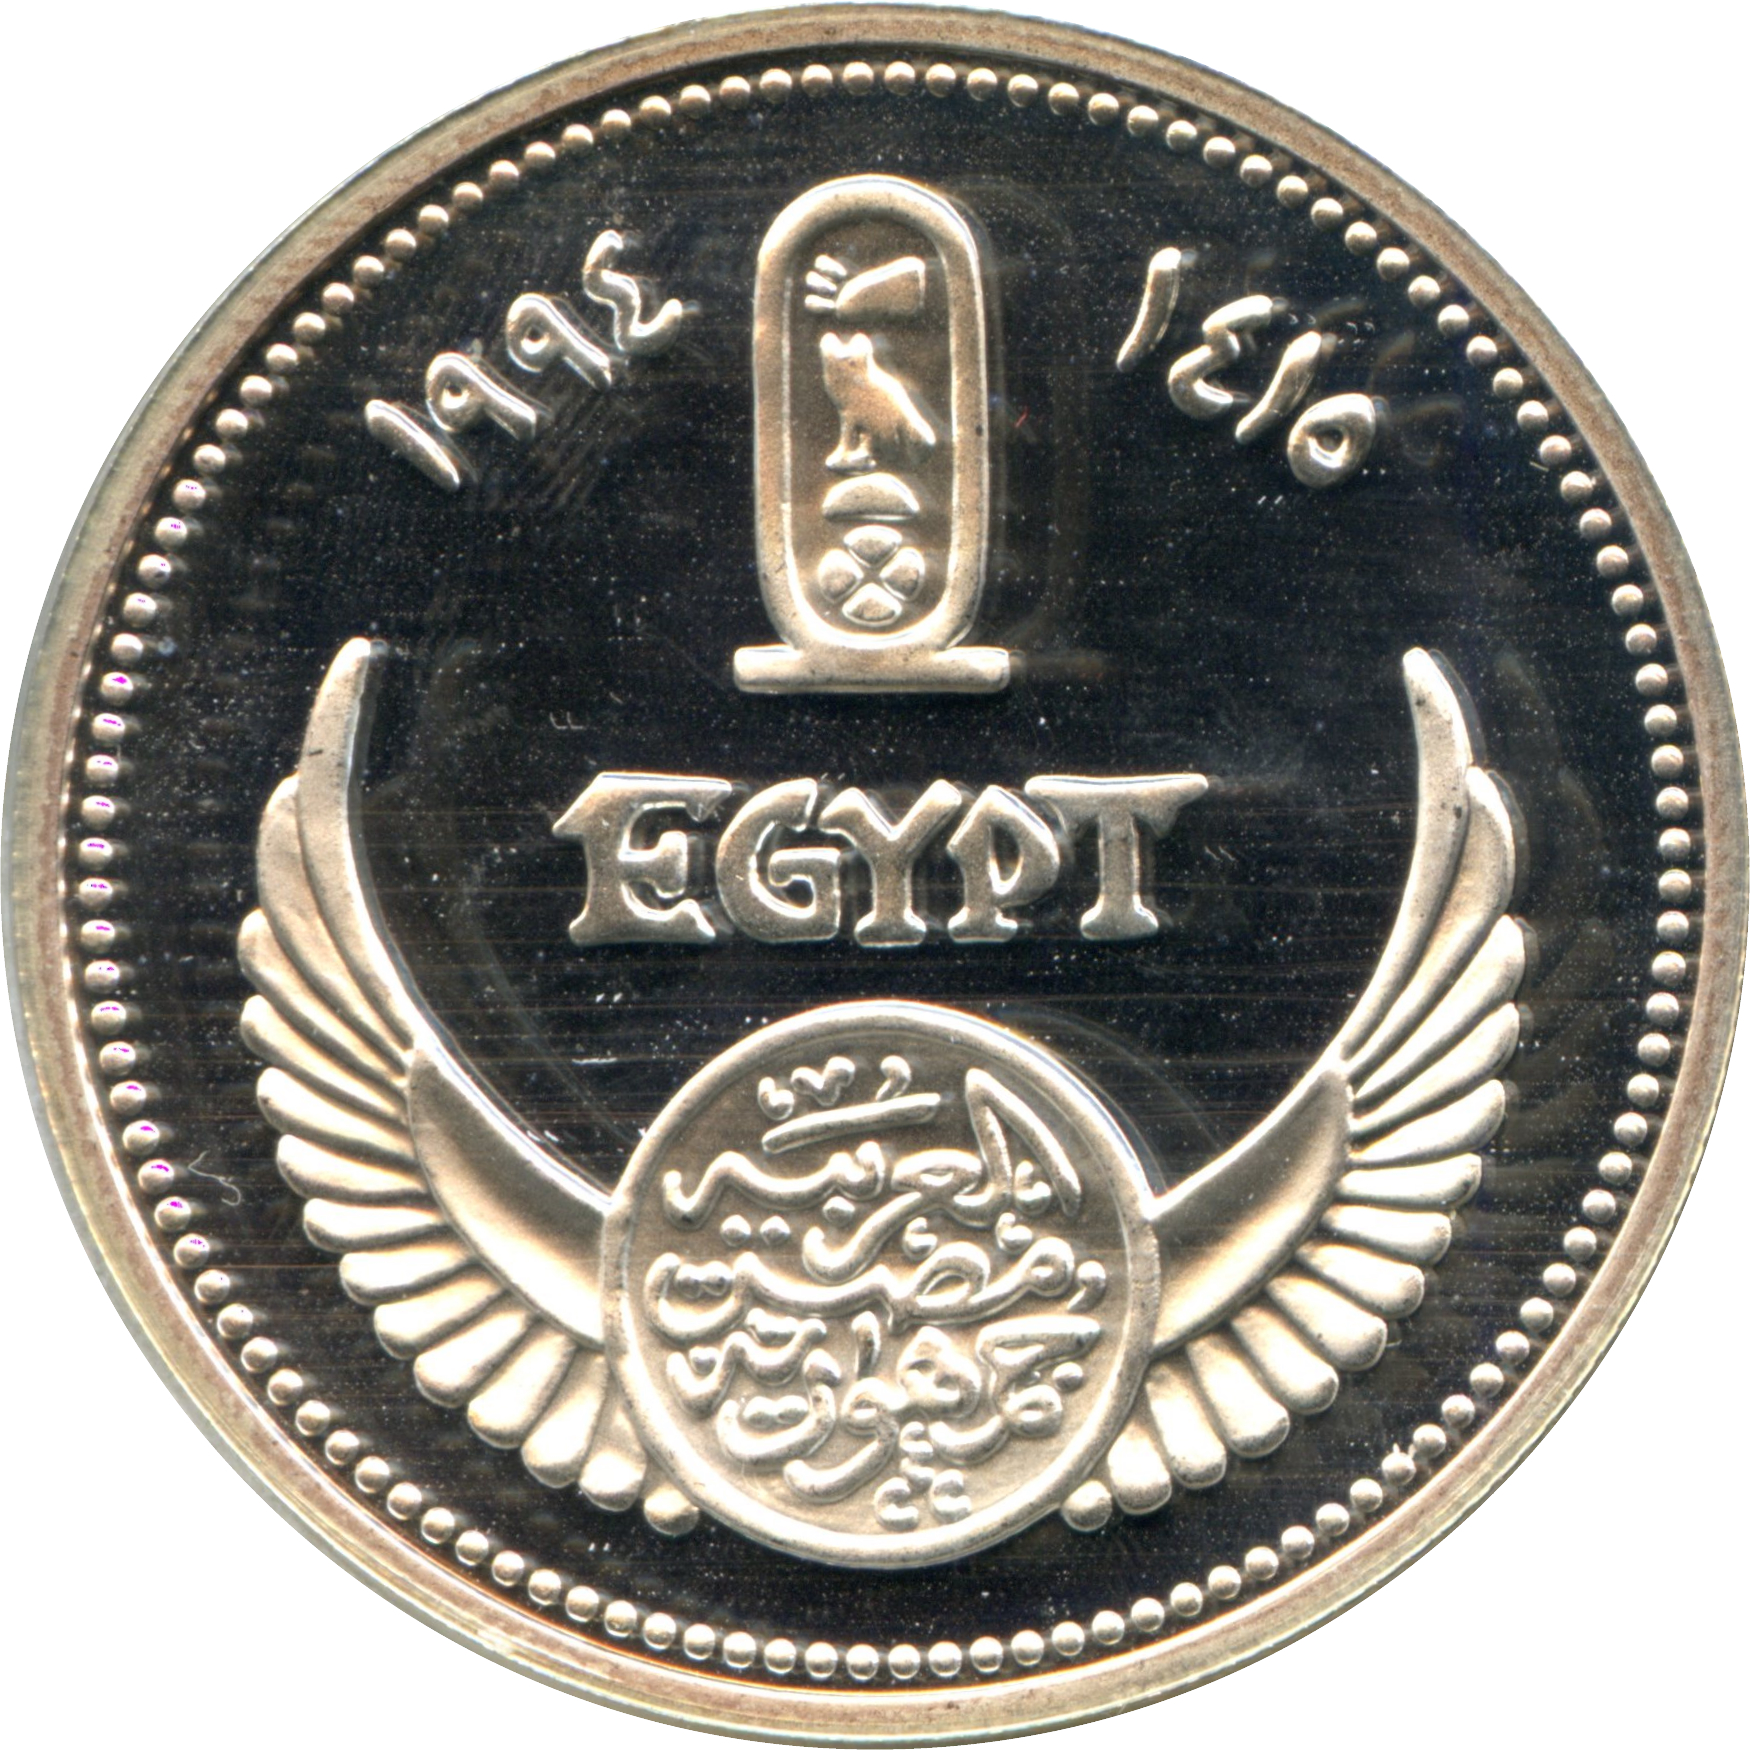 Egypt 1994 God Seth 5 Pounds Silver Coin,Proof